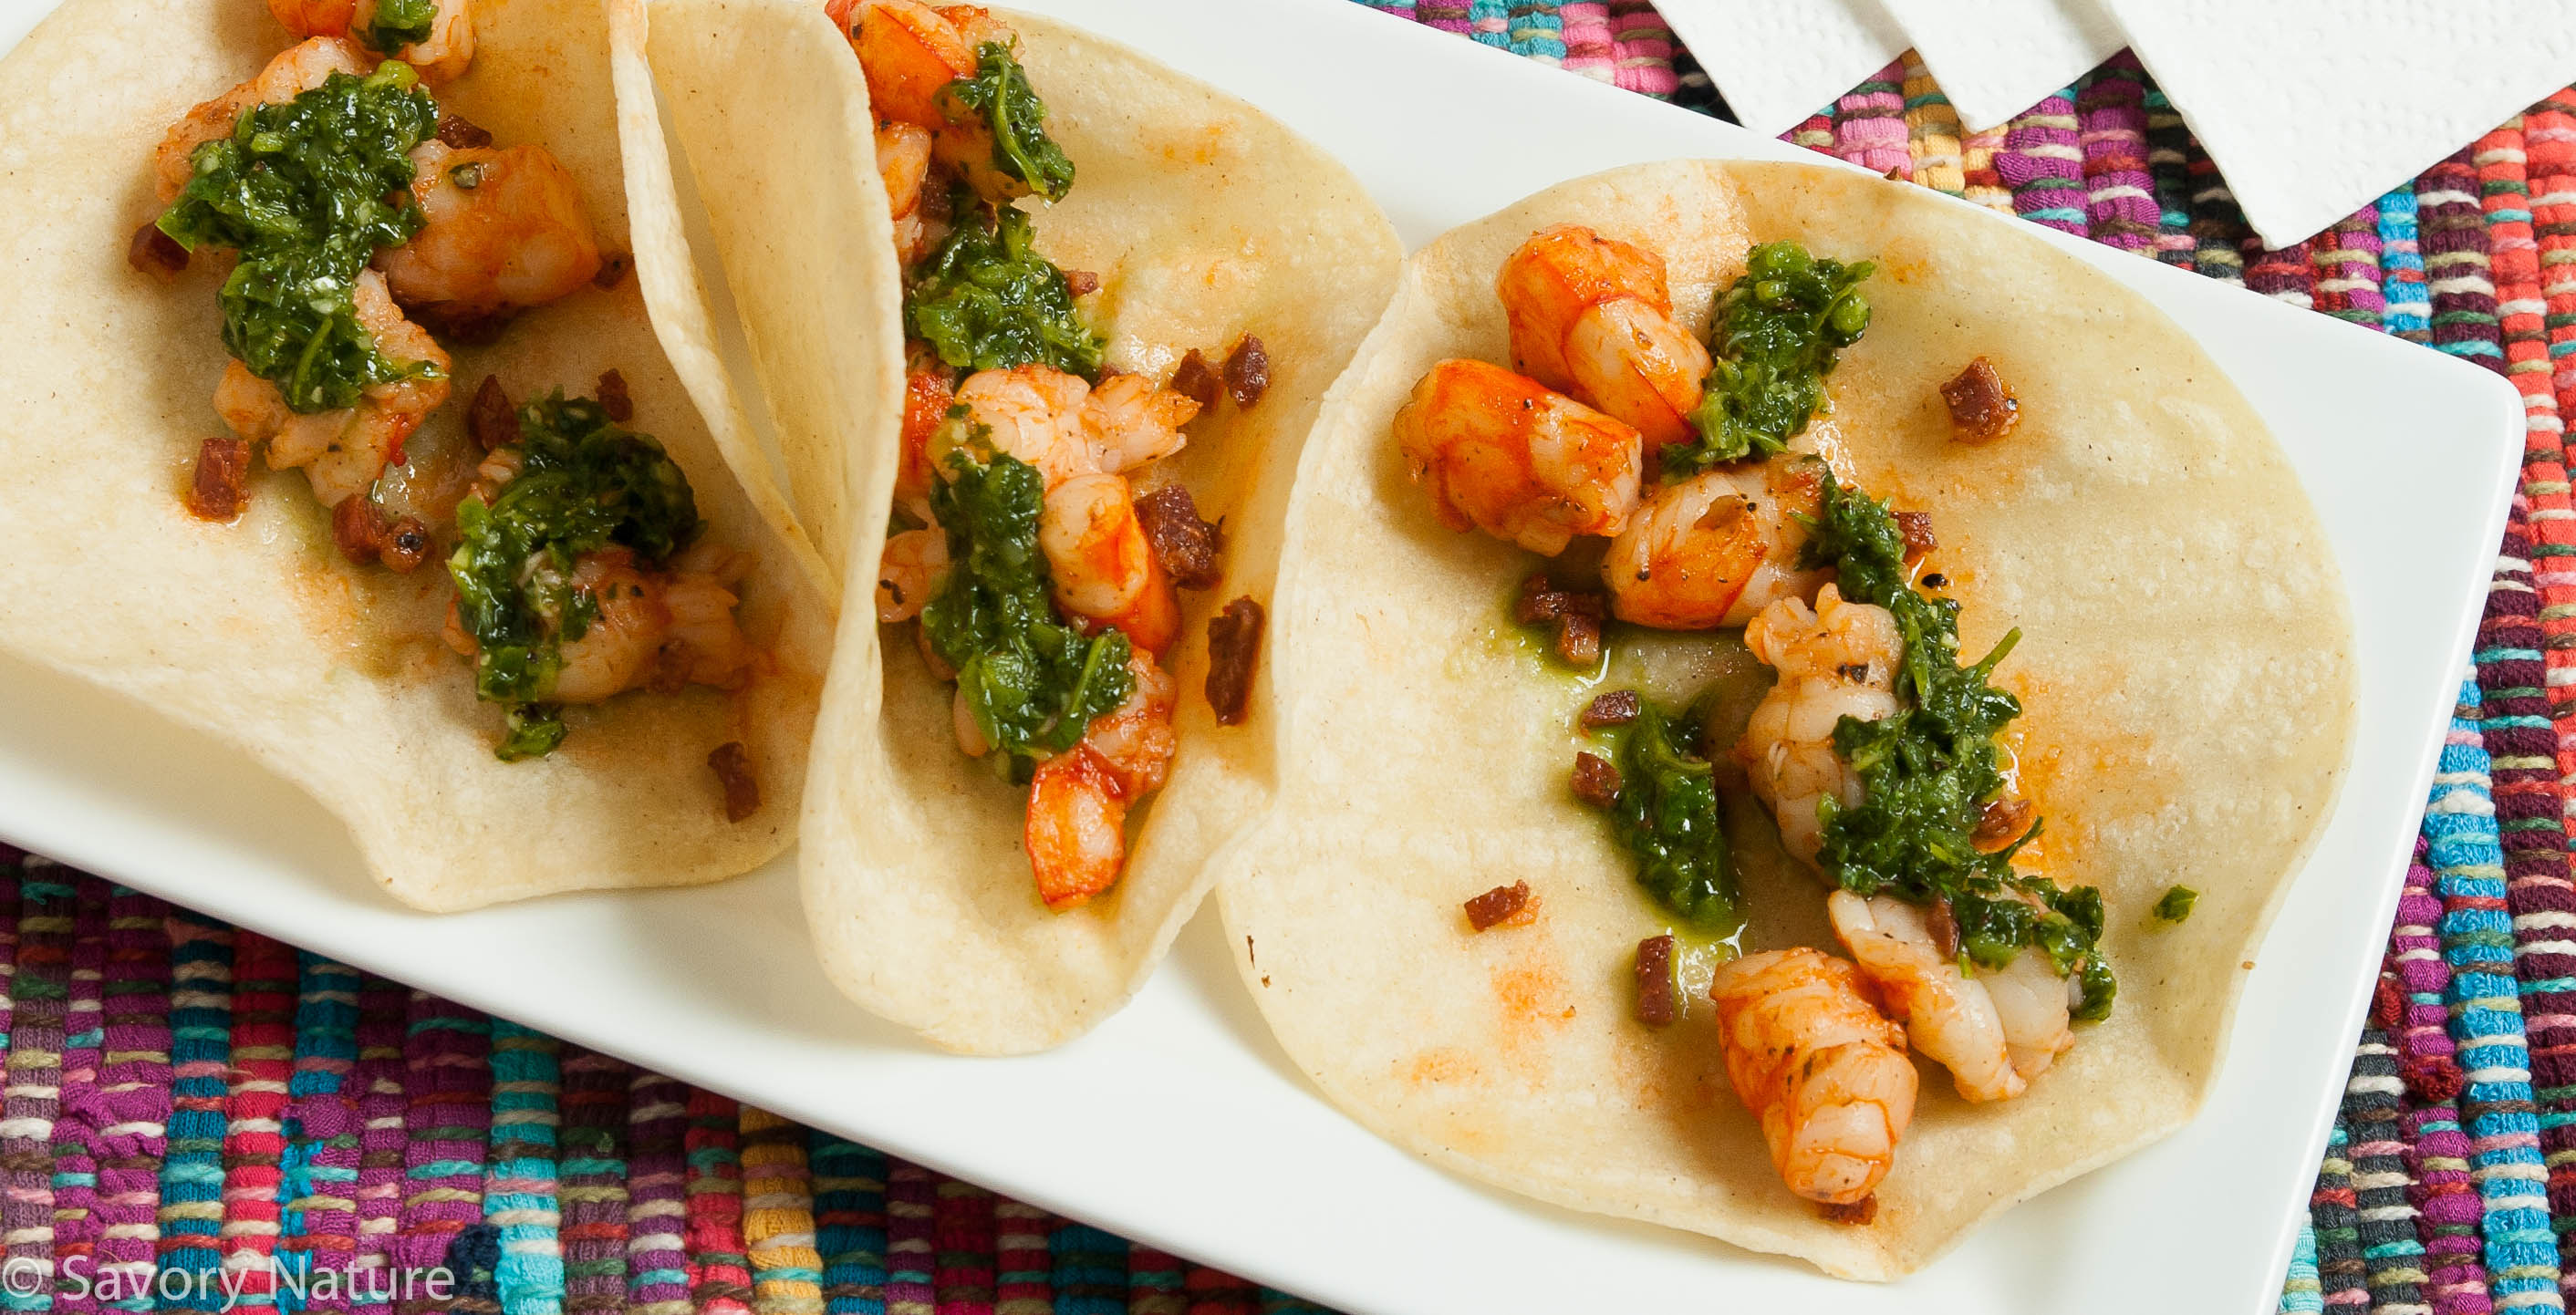 these shrimp tacos were inspired by a favorite lunch place gonza tacos ...